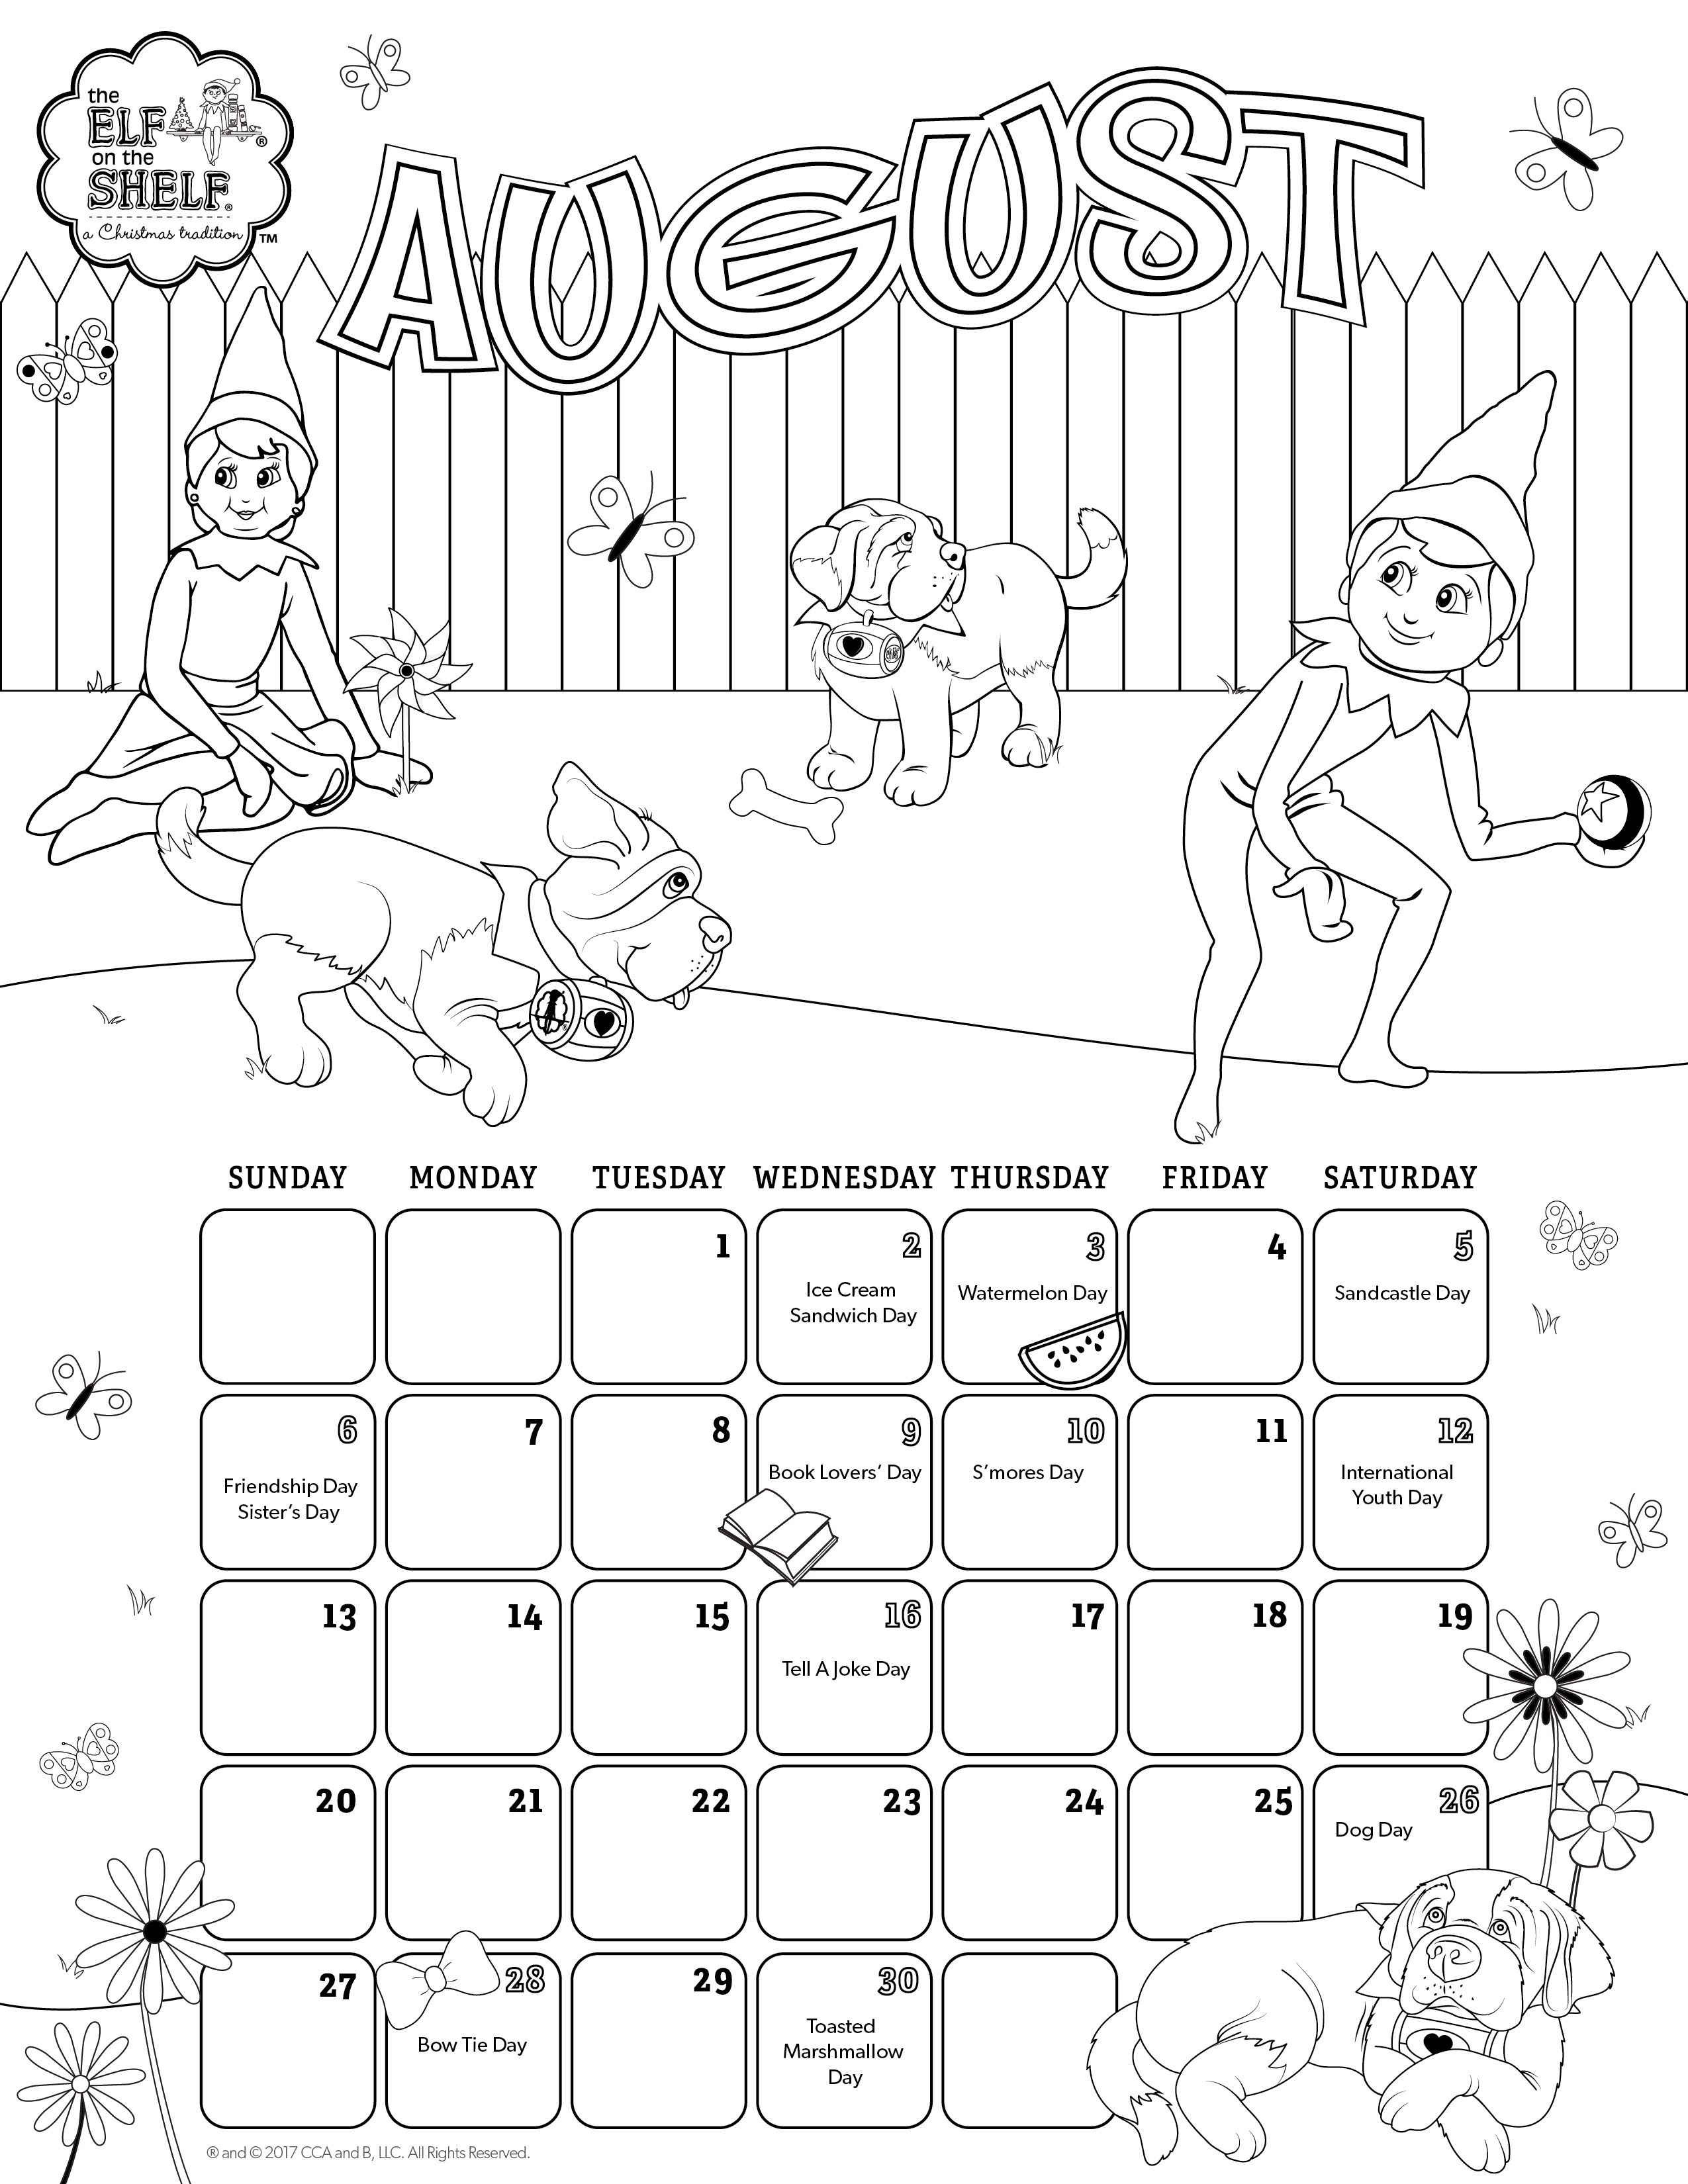 The Elf On The Shelf A Christmas Tradition Kids Calendar Coloring Pages Elf